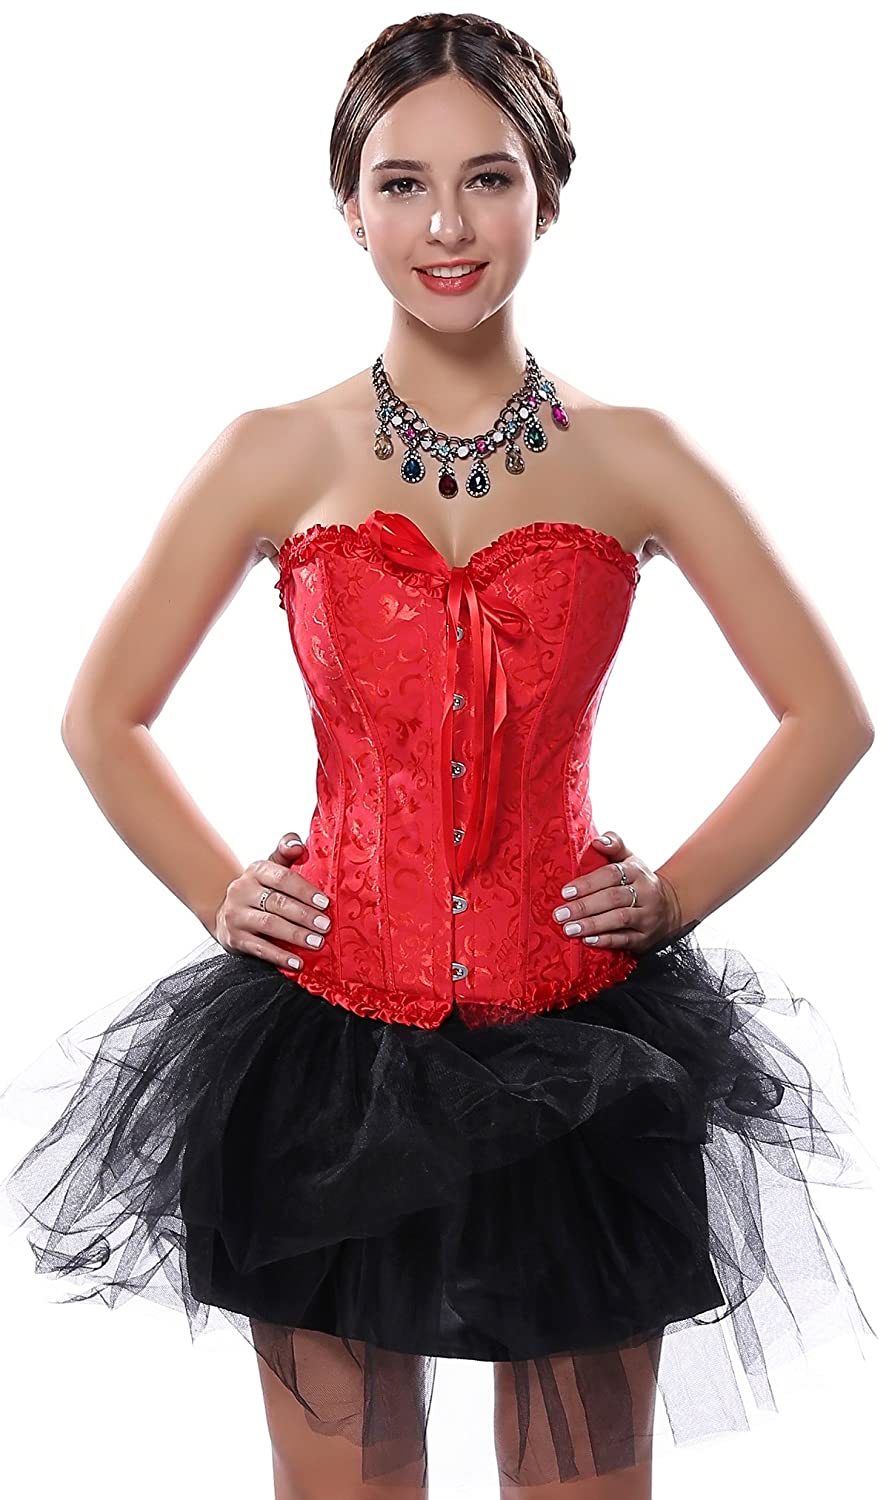 Stay Sexy Brocade Basque Red Corset with Petticoat TuTu Skirt Costumes Set